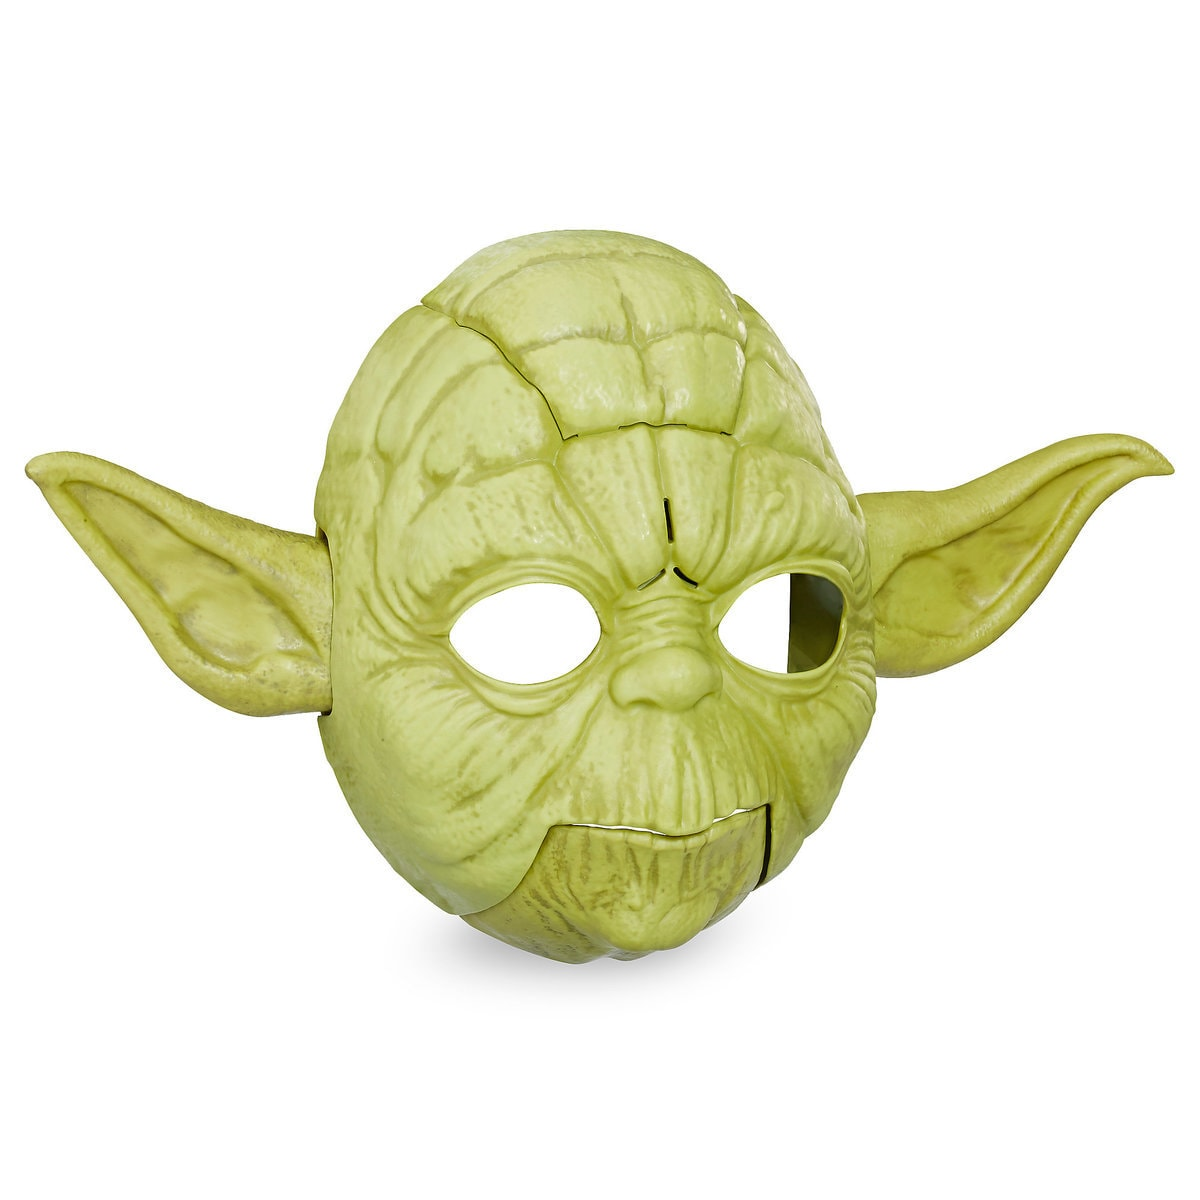 Yoda Electronic Mask for Kids by Hasbro - Star Wars